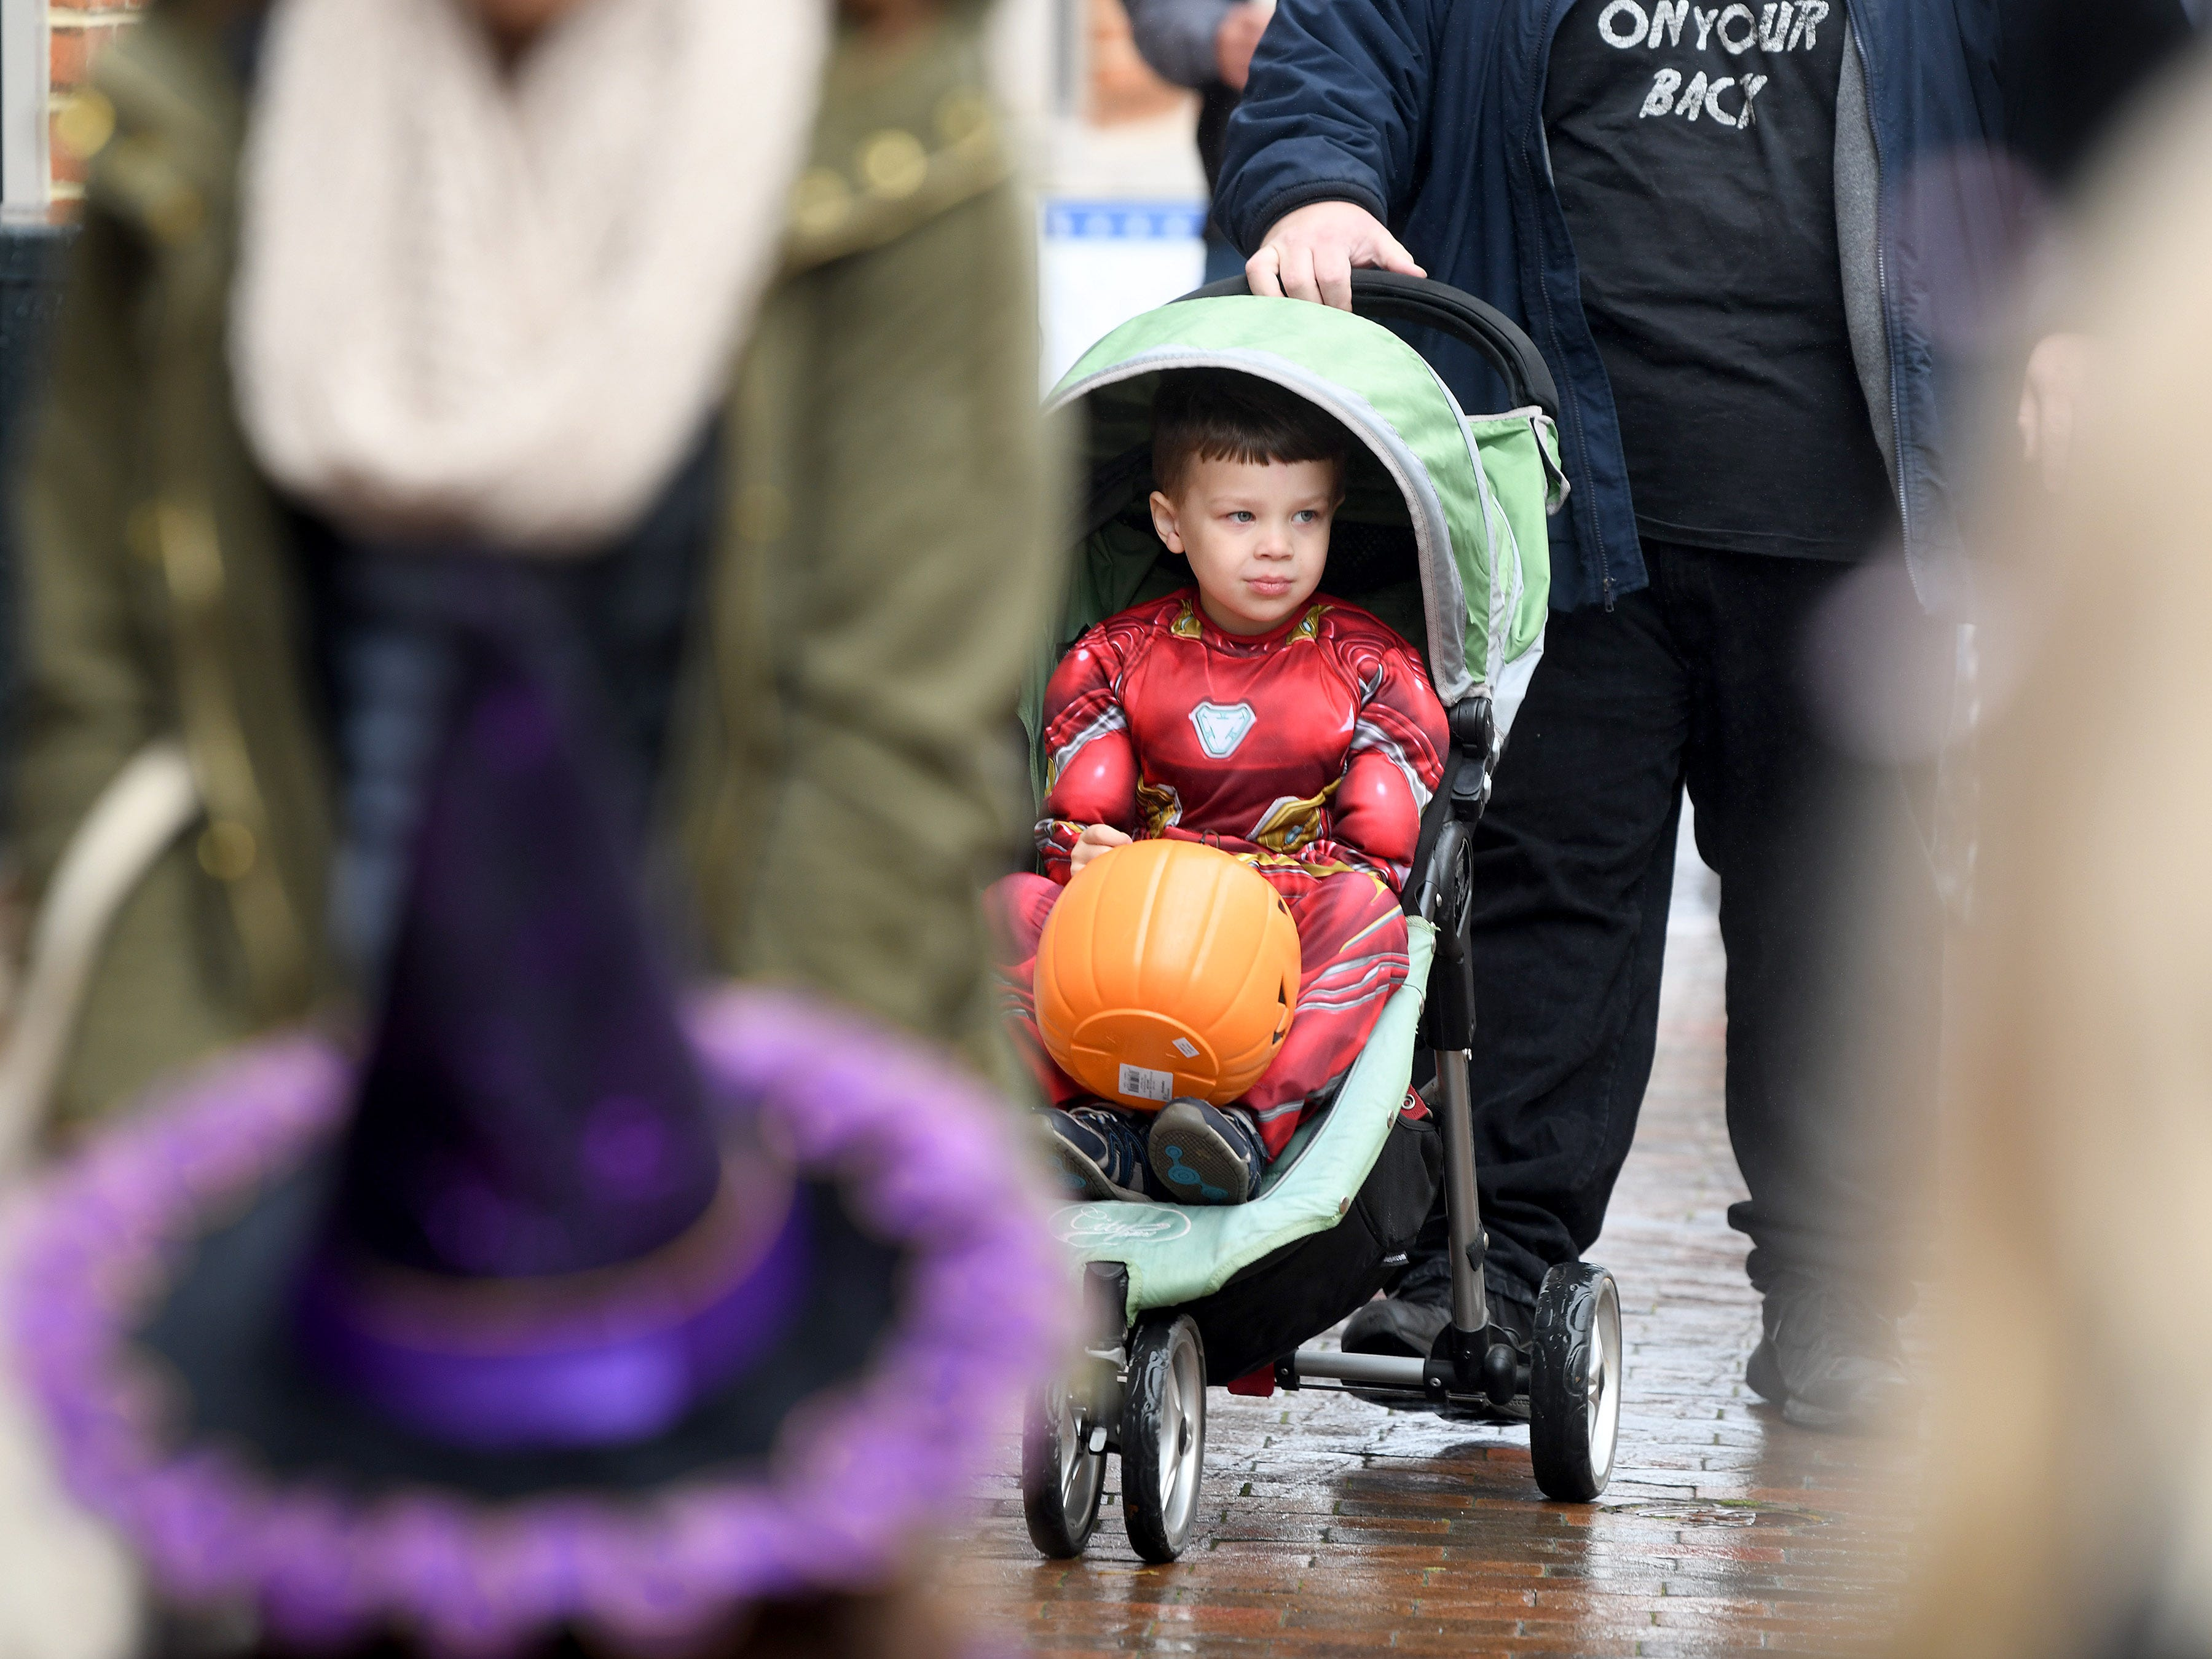 Iron Man holds onto his bucket of candy while riding in a stroller for trick-or-treating in downtown Staunton on Saturday, Oct. 27, 2018.